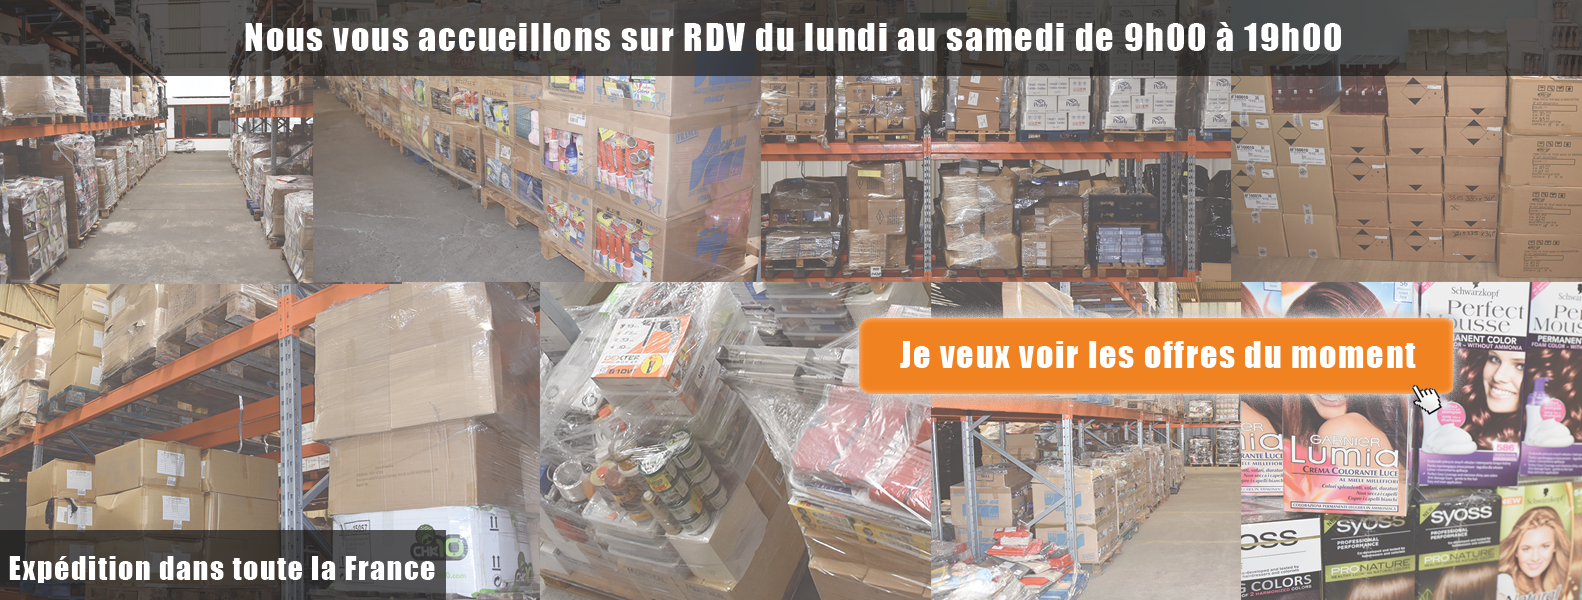 http://www.lot-destockage.com/wp-content/uploads/2016/12/banniere1-1.png